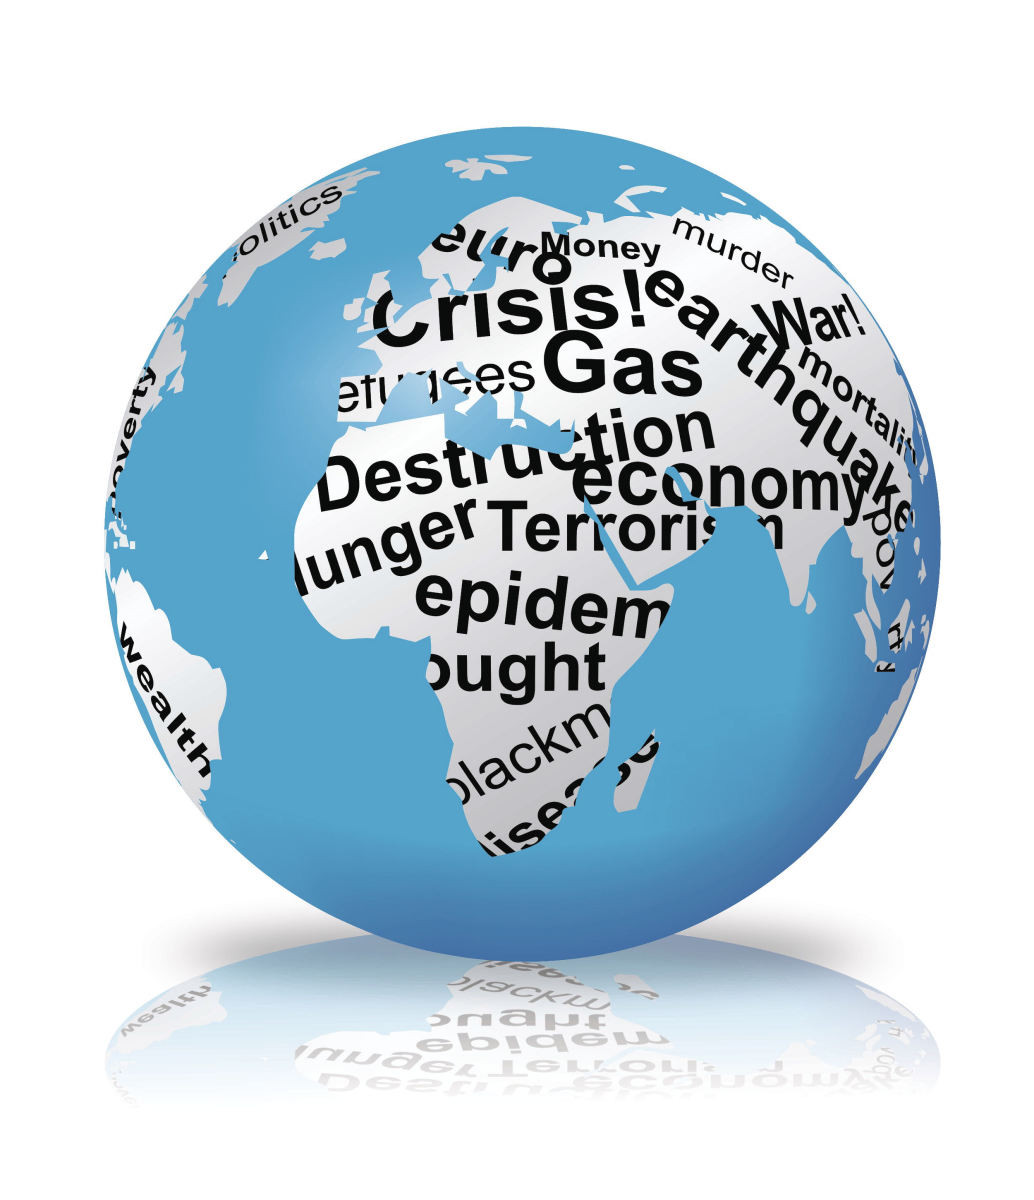 Risk Factors for Post Traumatic Stress Disorder (PTSD)